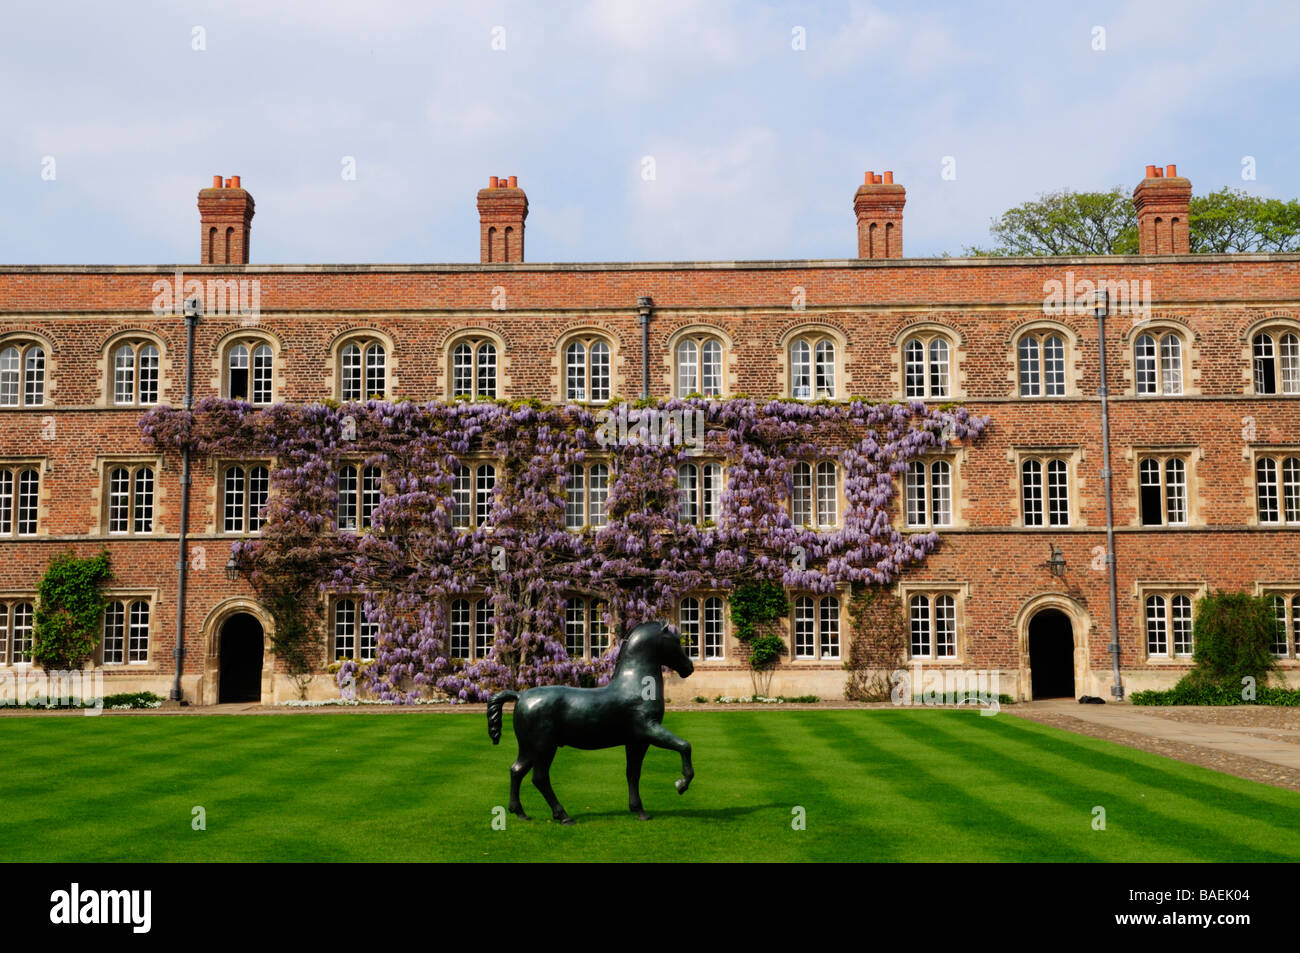 Horse Statue in First Court Jesus College Cambridge England UK Stock Photo